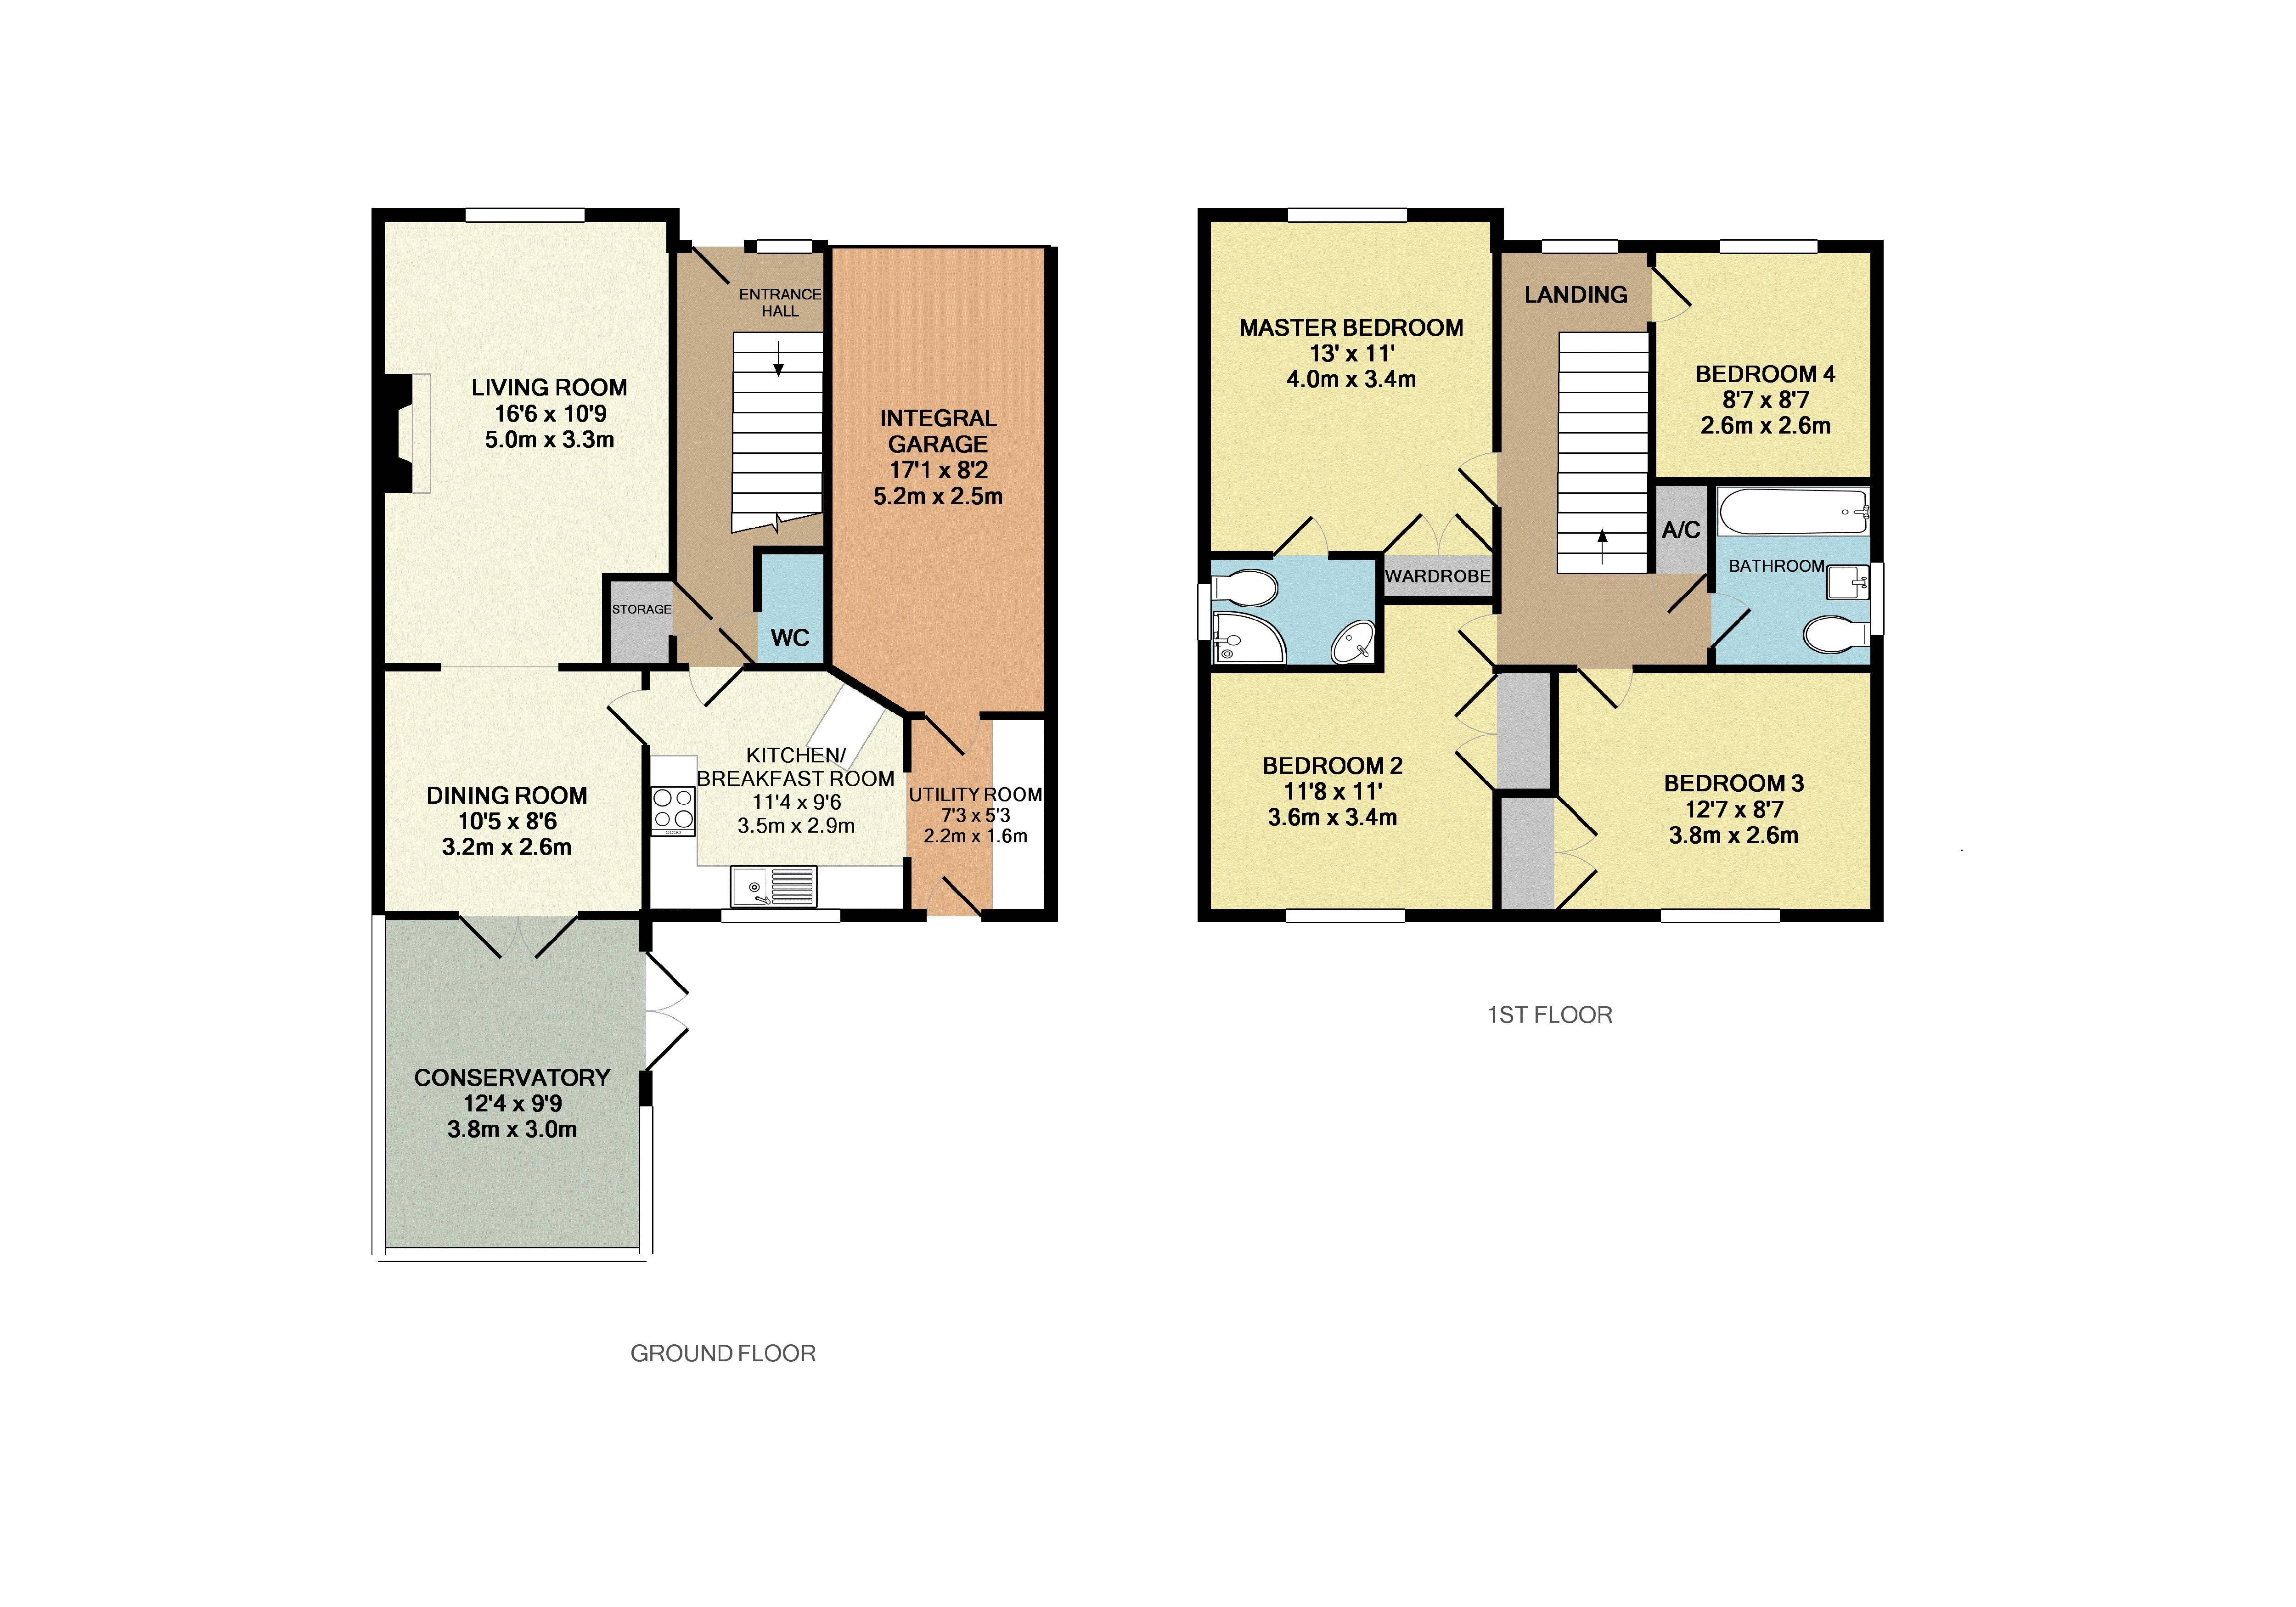 4 bedroom house for sale in lidlington for How much is a bedroom worth in an appraisal